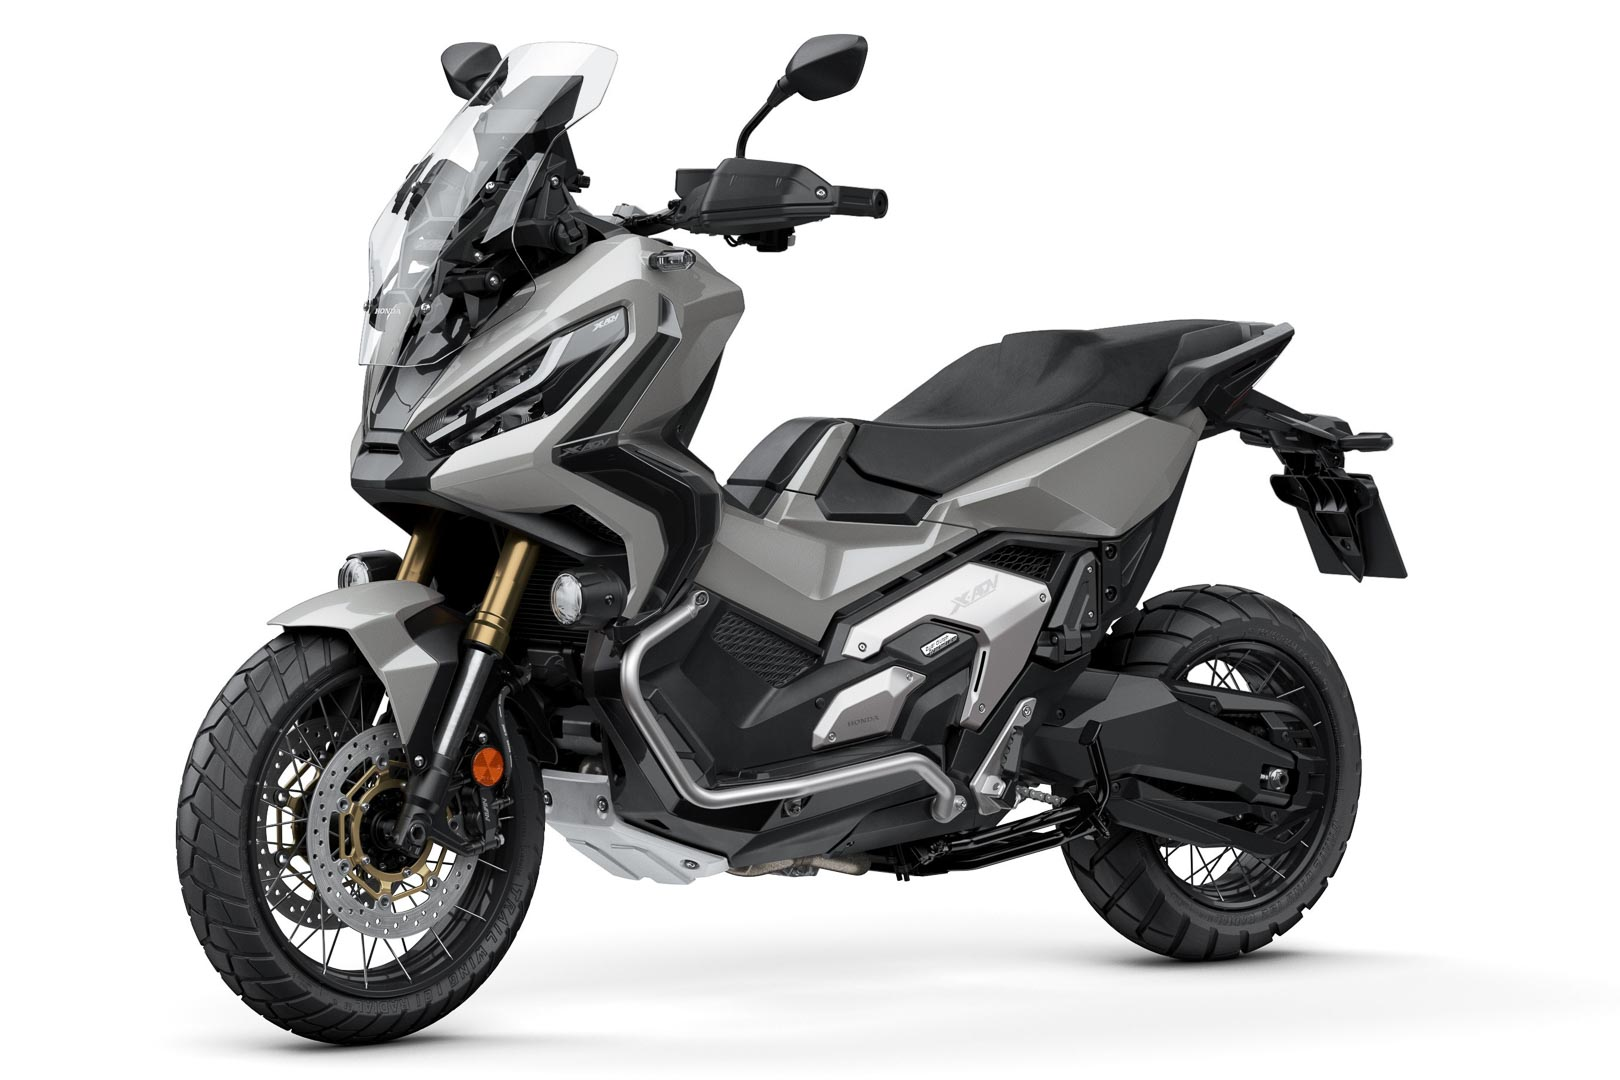 2021 Honda X-ADV First Look: Scooter and Motorcycle